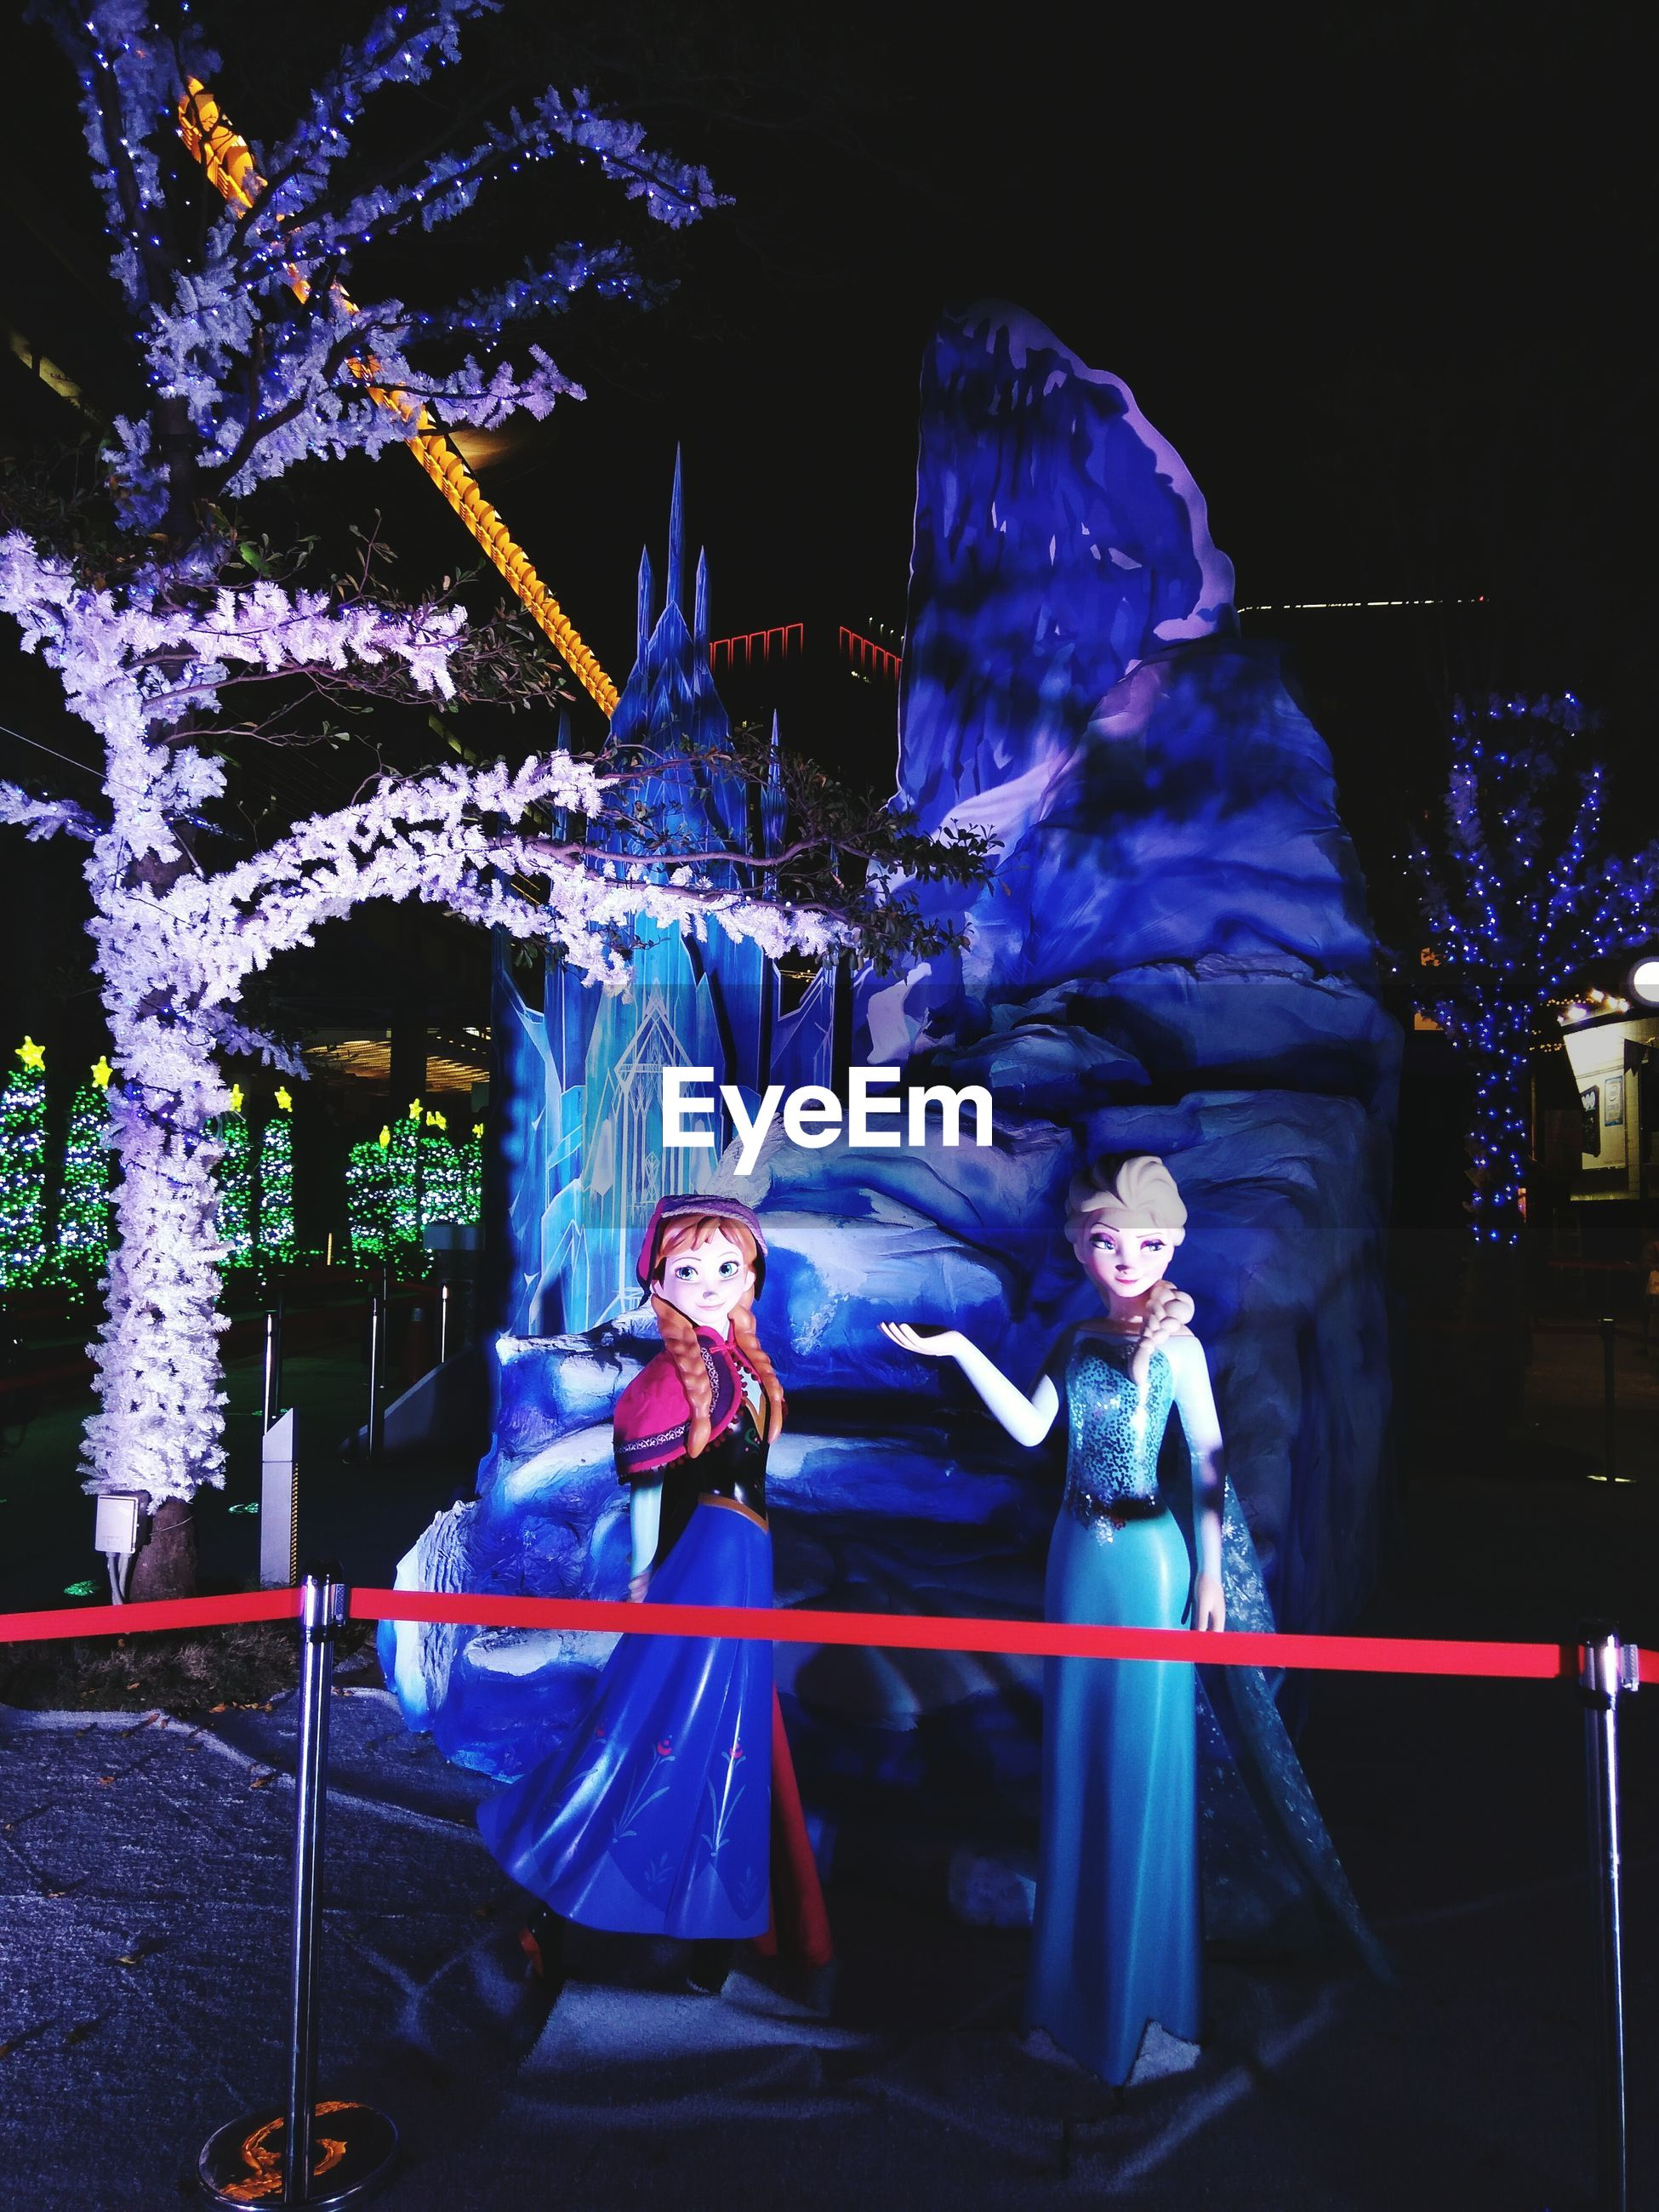 night, illuminated, real people, arts culture and entertainment, lifestyles, costume, celebration, leisure activity, two people, carnival, long exposure, nightlife, standing, architecture, sculpture, outdoors, women, young women, full length, building exterior, city, young adult, carousel, people